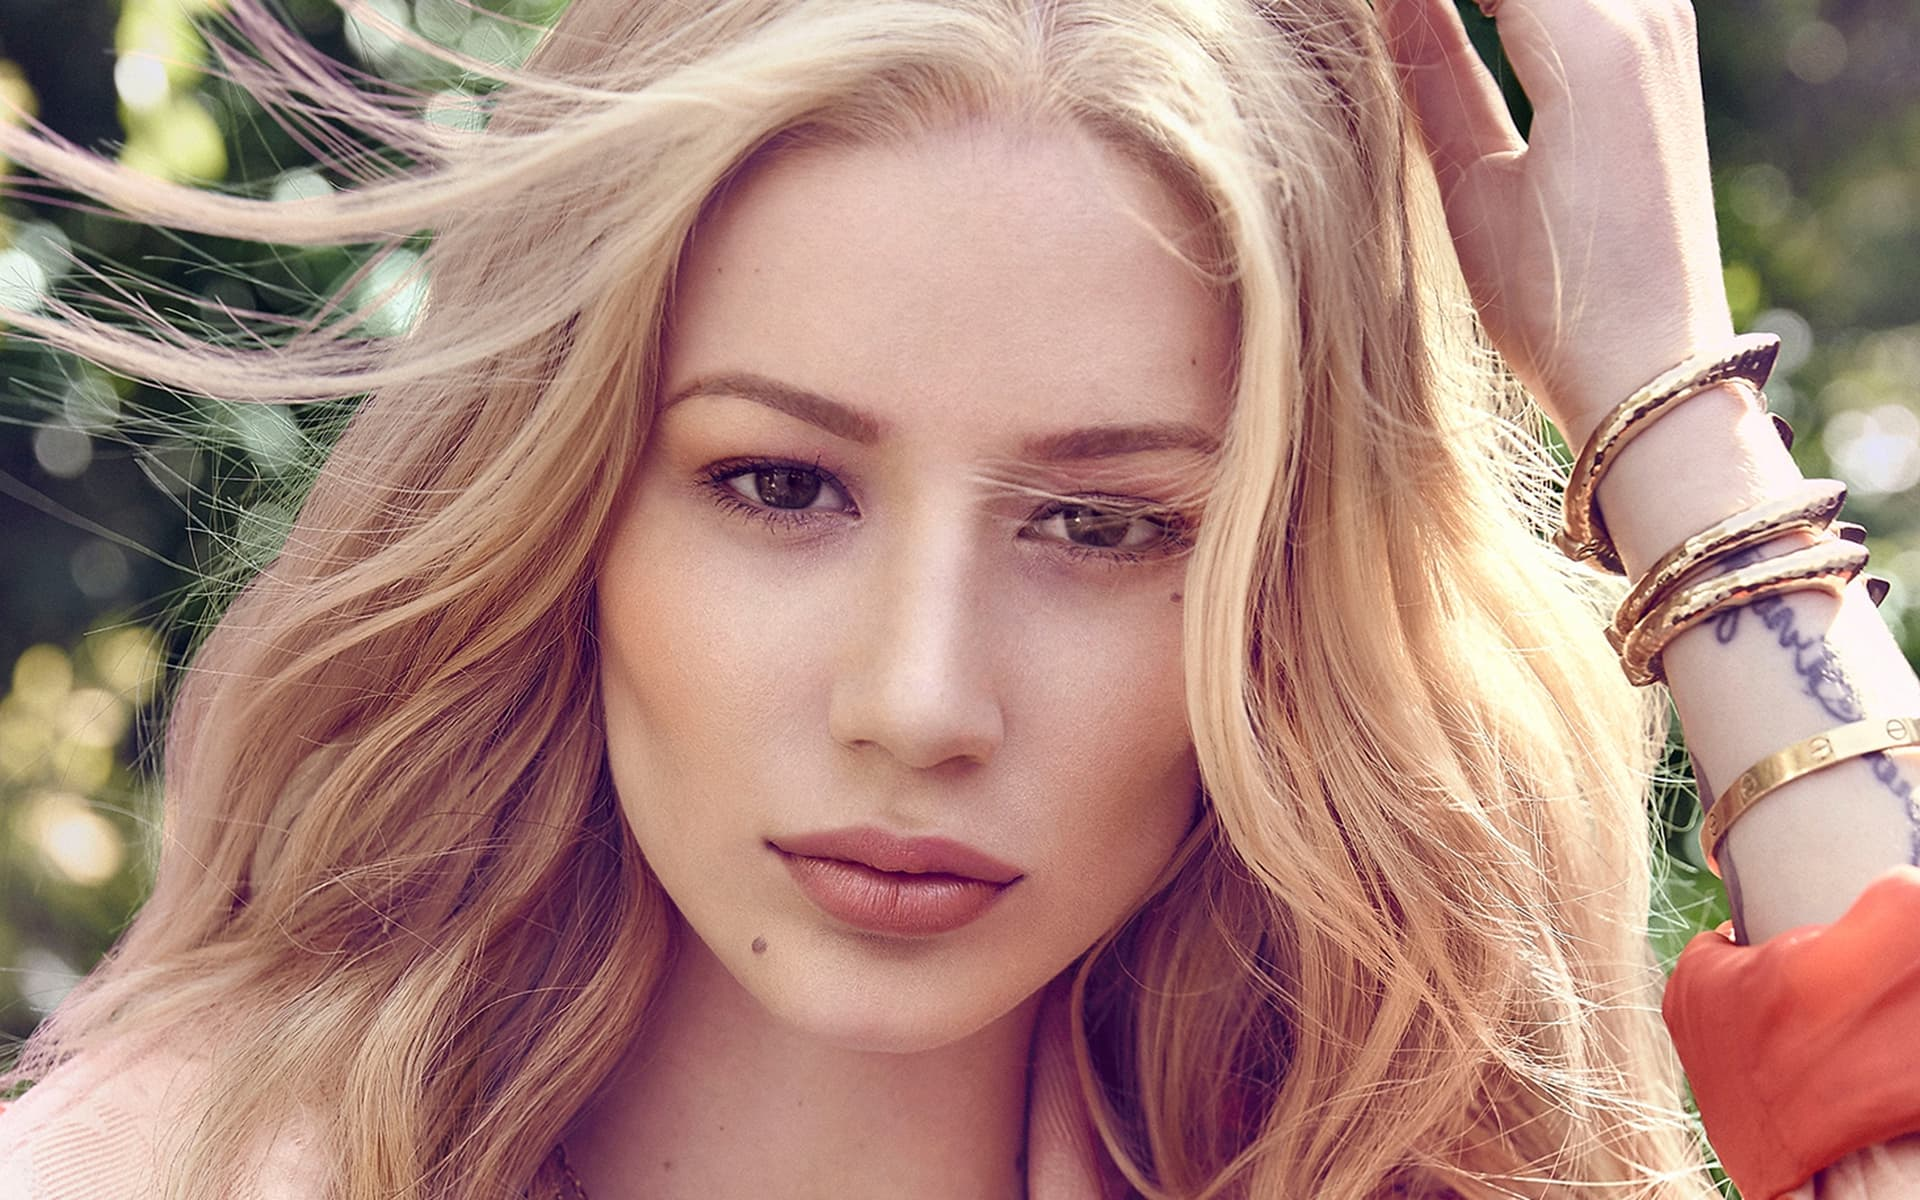 1920x1200 Iggy Azalea Face Wallpaper 62194 1920x1200 px ~ HDWallSource.com